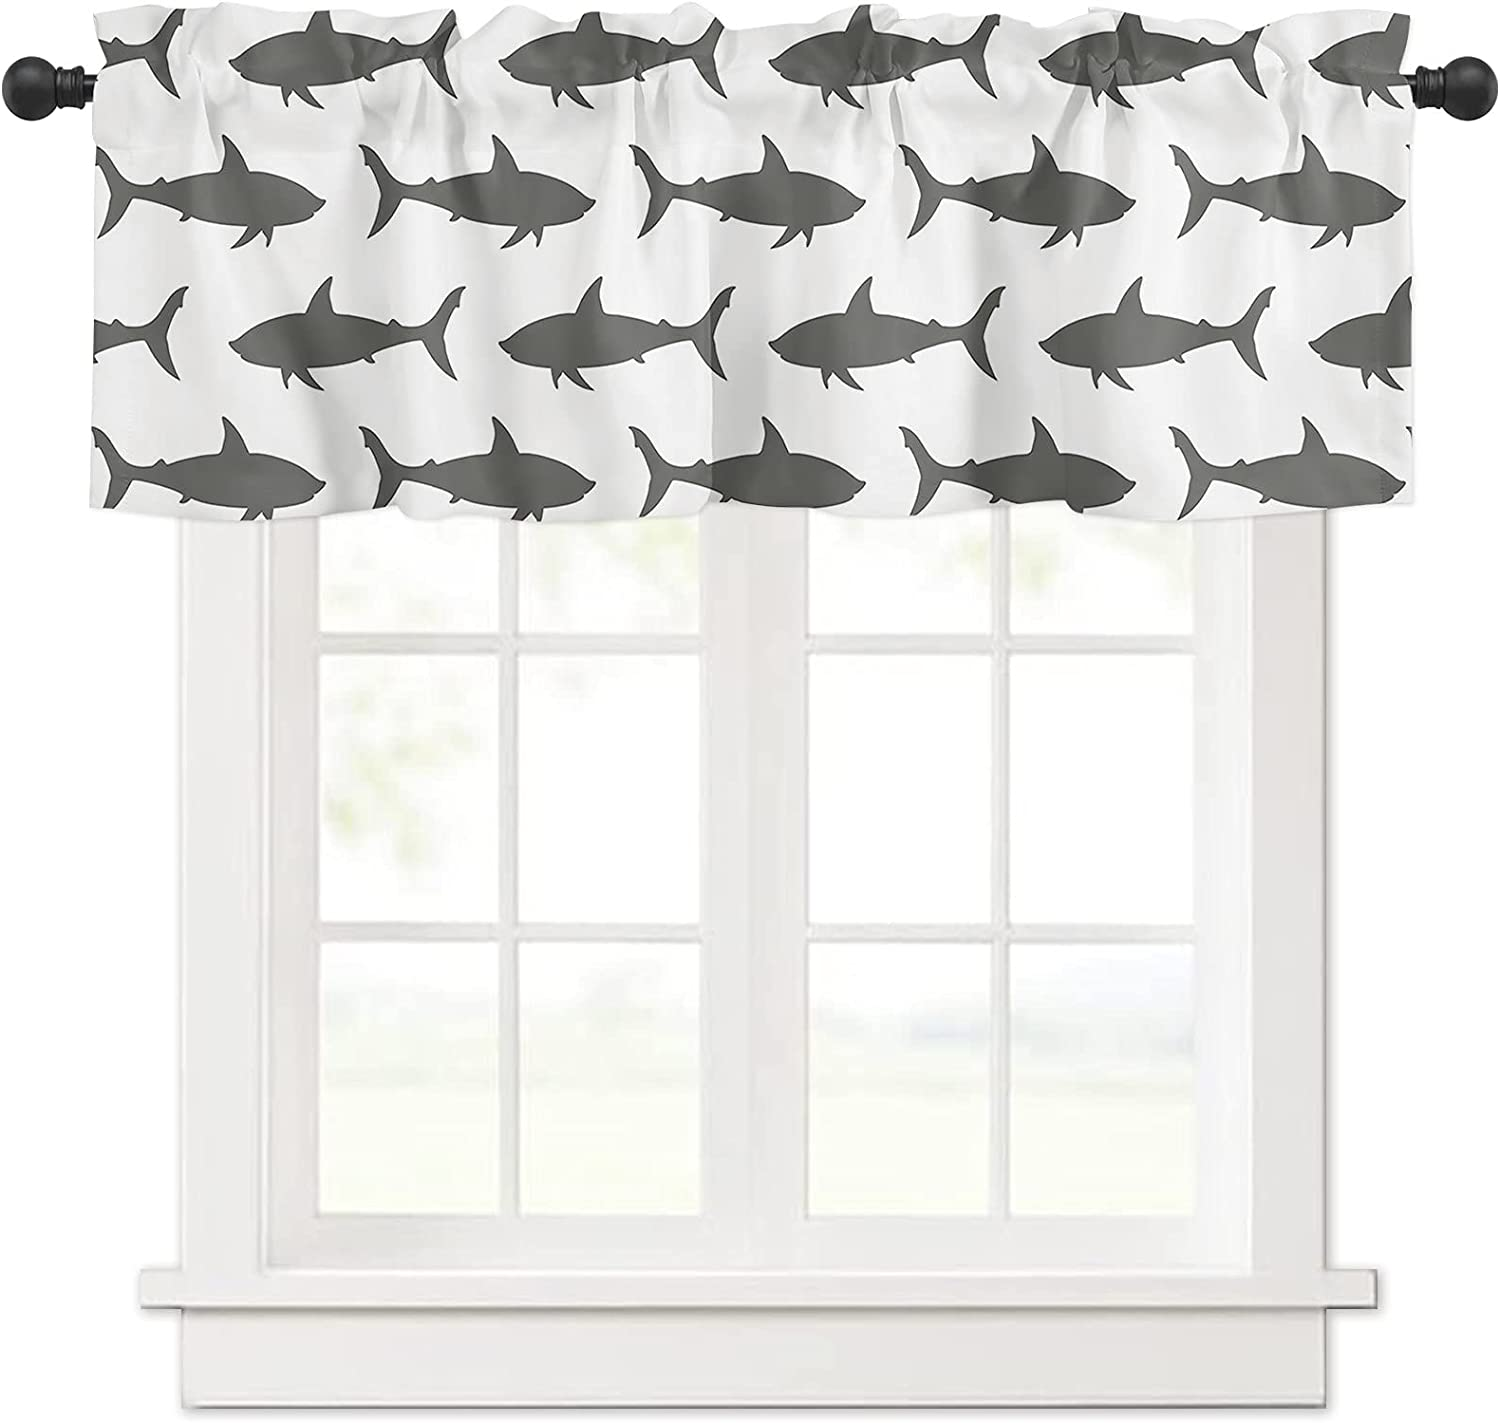 Ocean Popular brand in the world Animal Shark Silhouette Texture for Large-scale sale Windo Valances Curtain